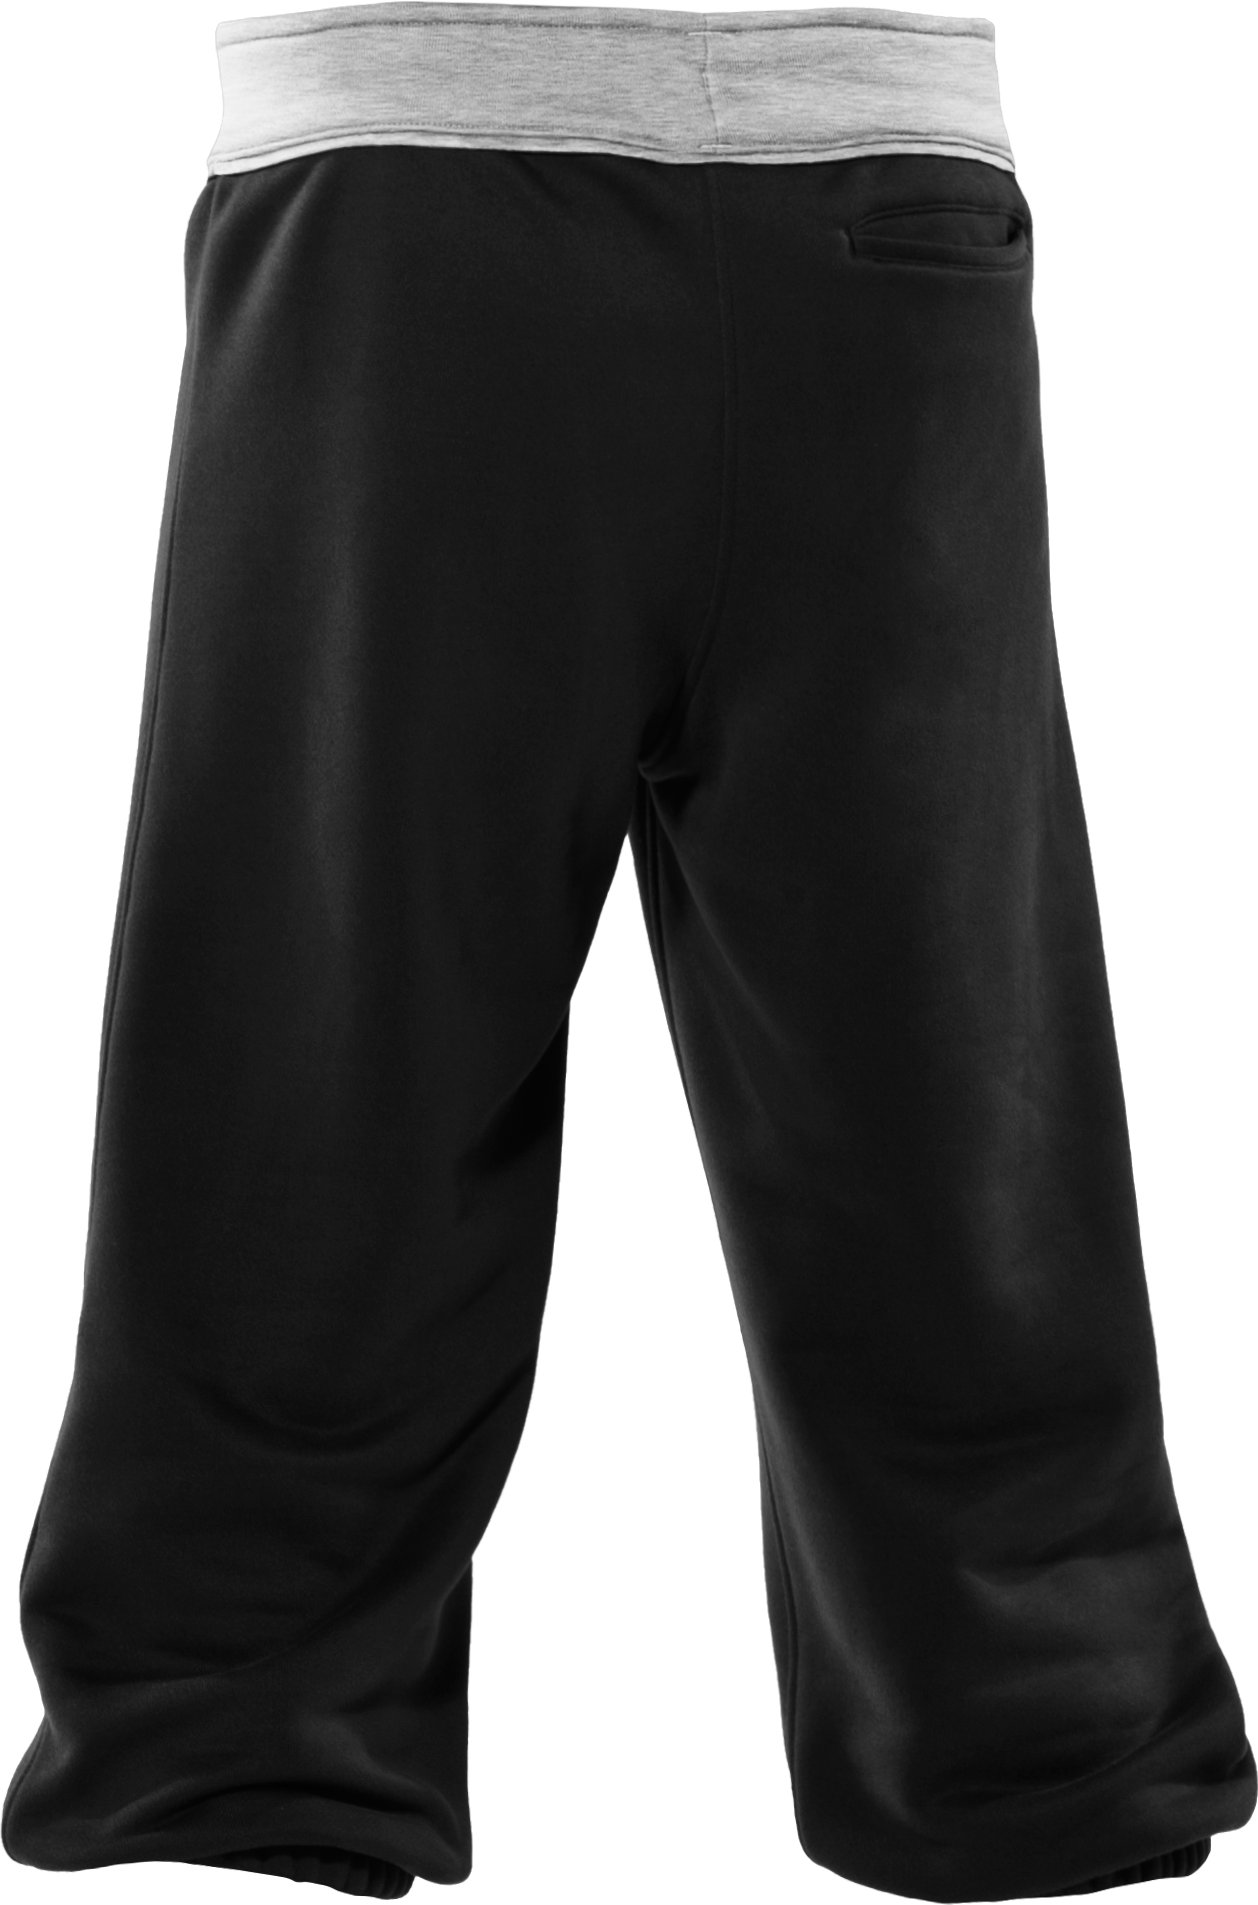 Girls' French Terry Capri Pants, Black , undefined